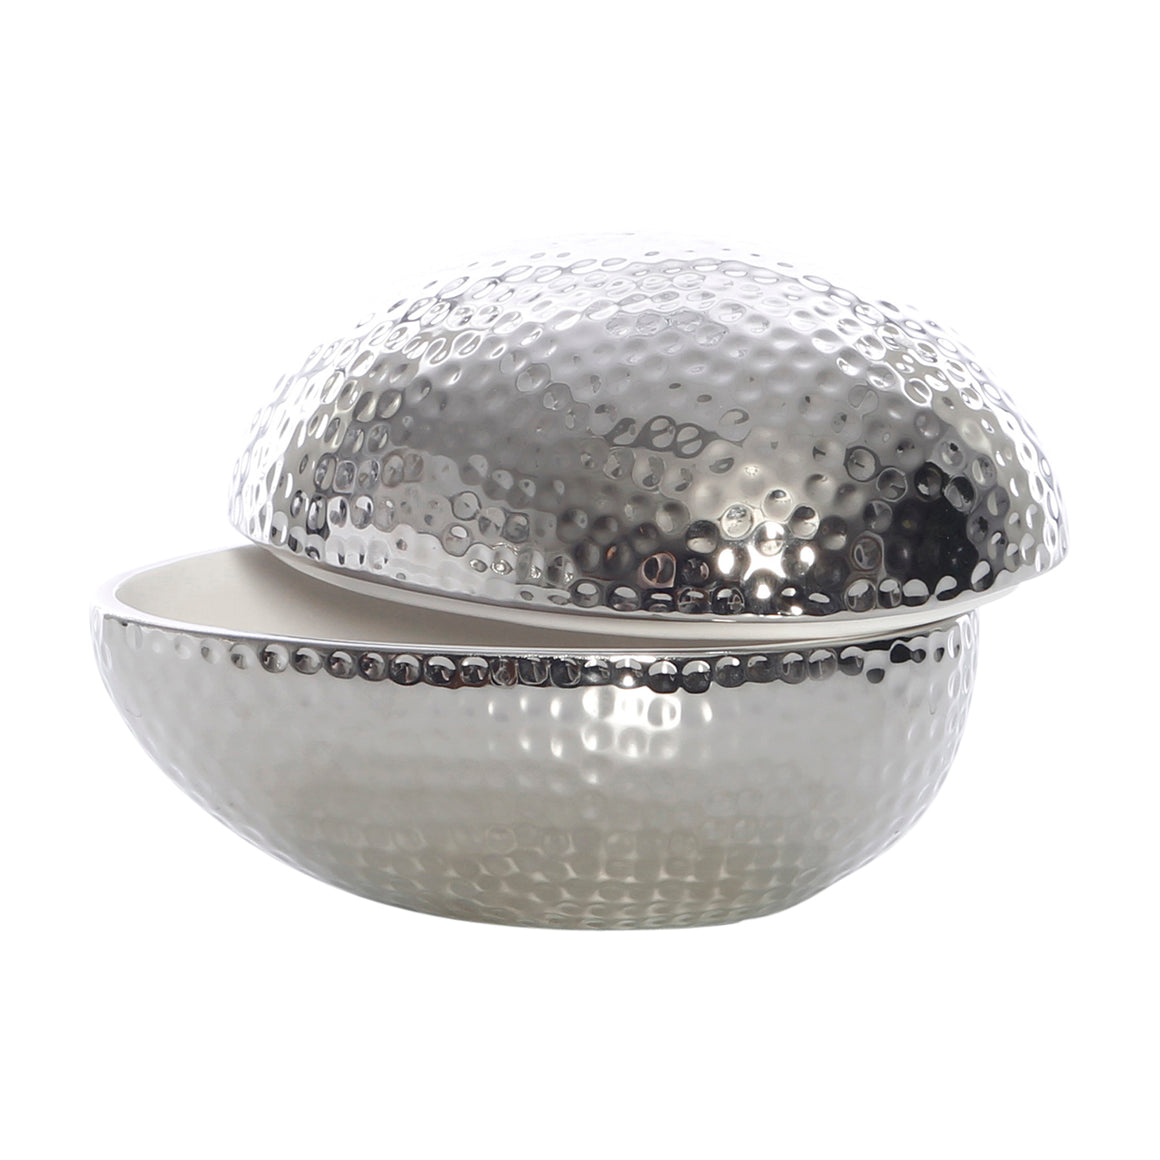 Silver Egg with White Lining